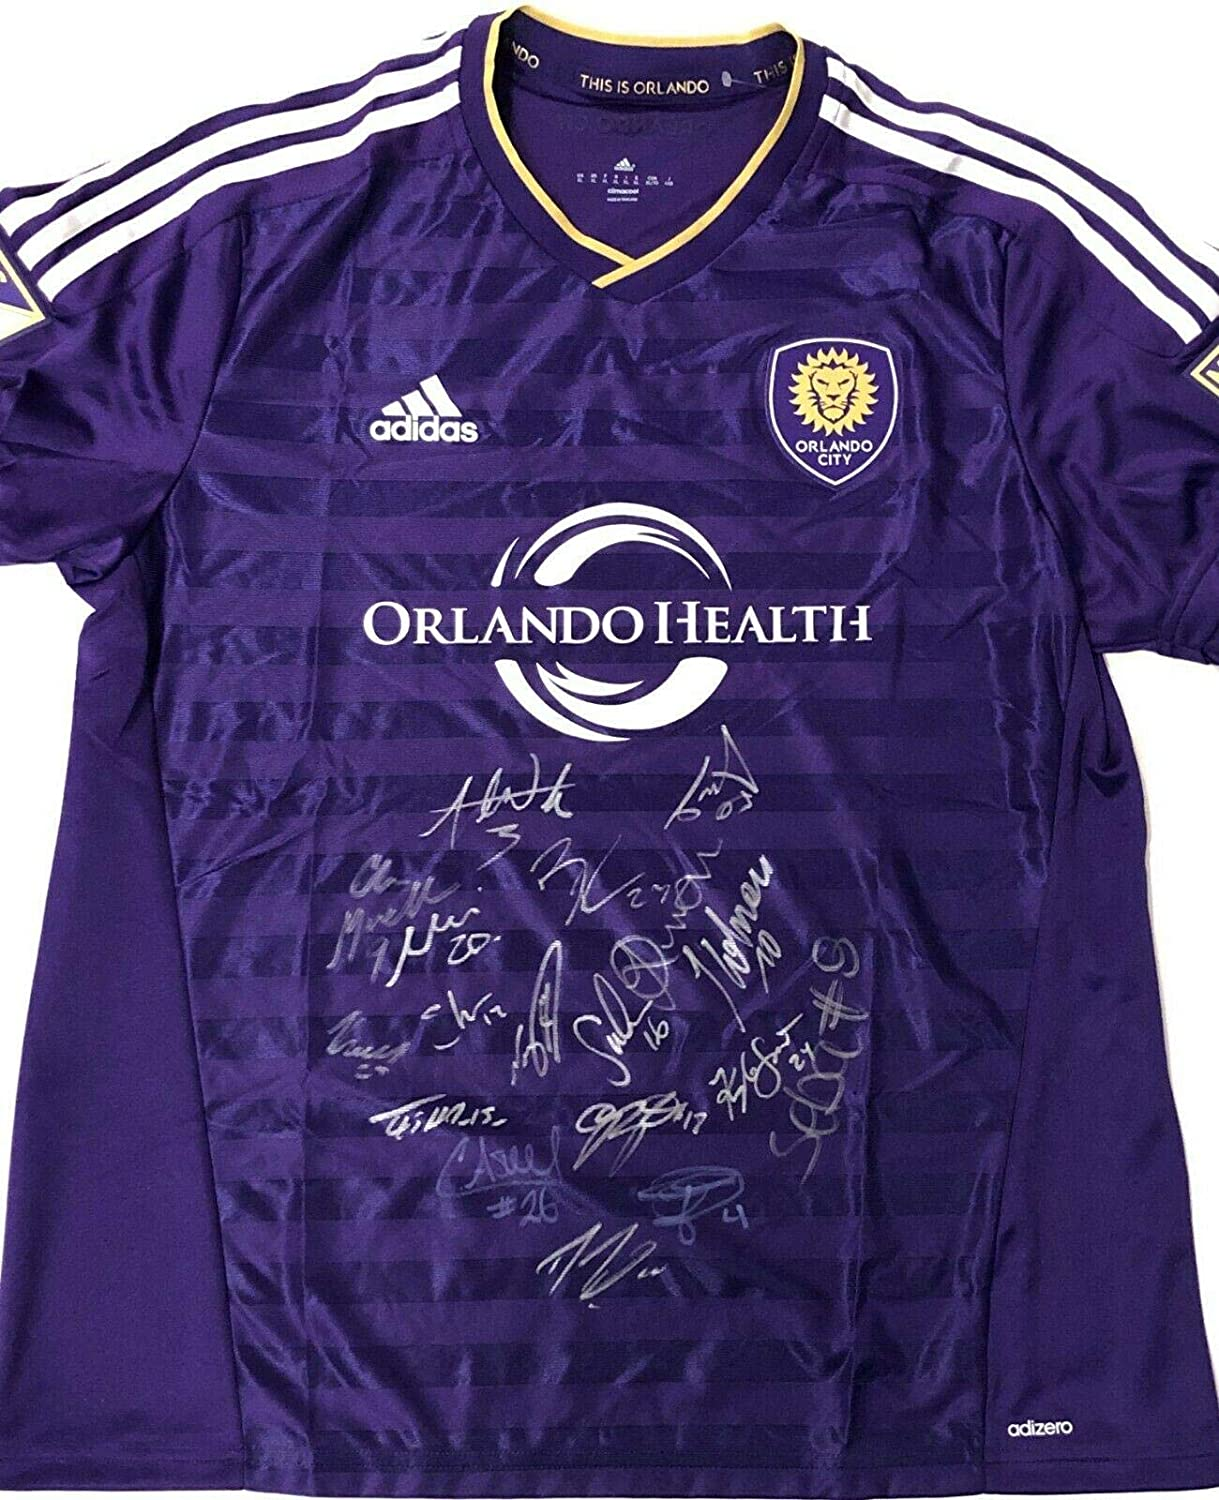 Orlando City Sc 2019 Team Signed Soccer Jersey W Coa Mls Futbol Xl Adidas Nani A Autographed Soccer Jerseys At Amazon S Sports Collectibles Store